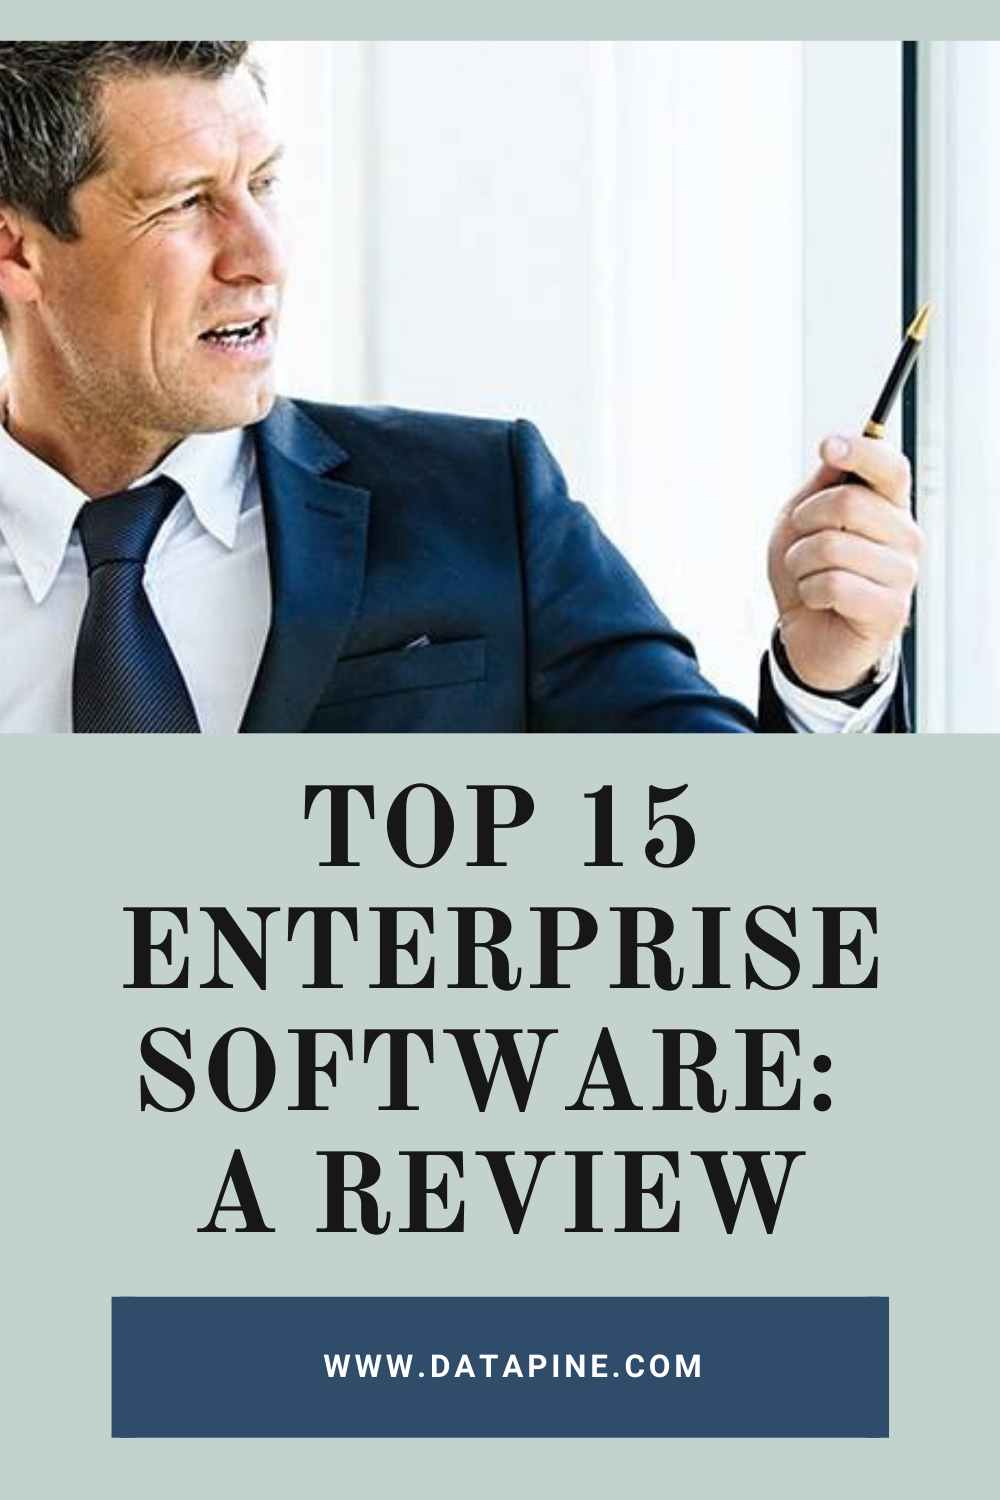 Read our comprehensive review of the top enterprise